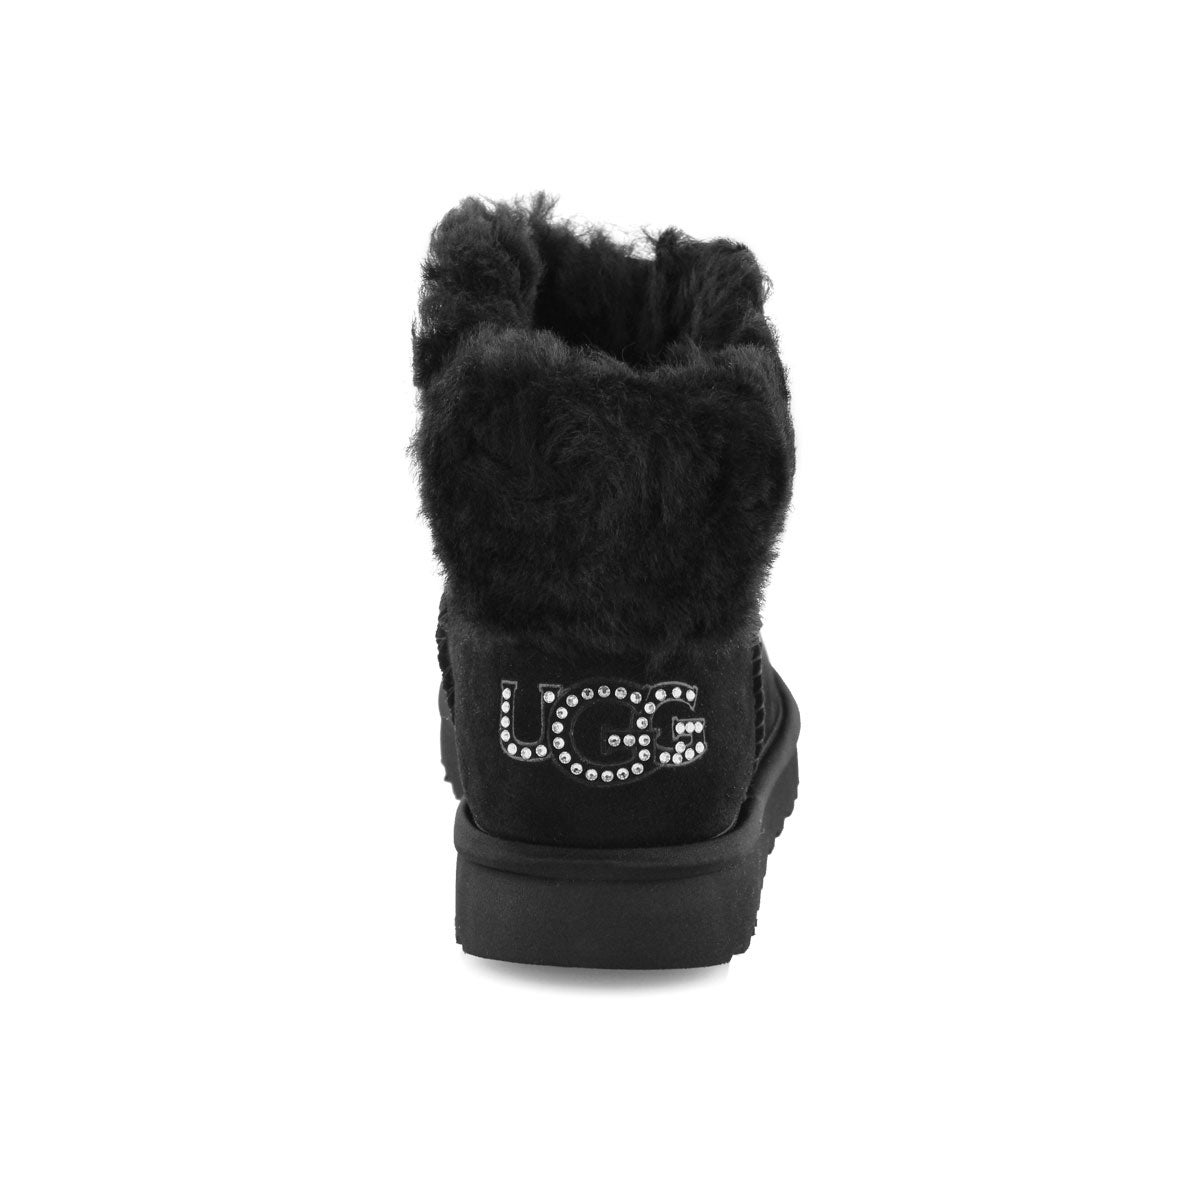 Lds Classic Bling Mini blk shpskn boot